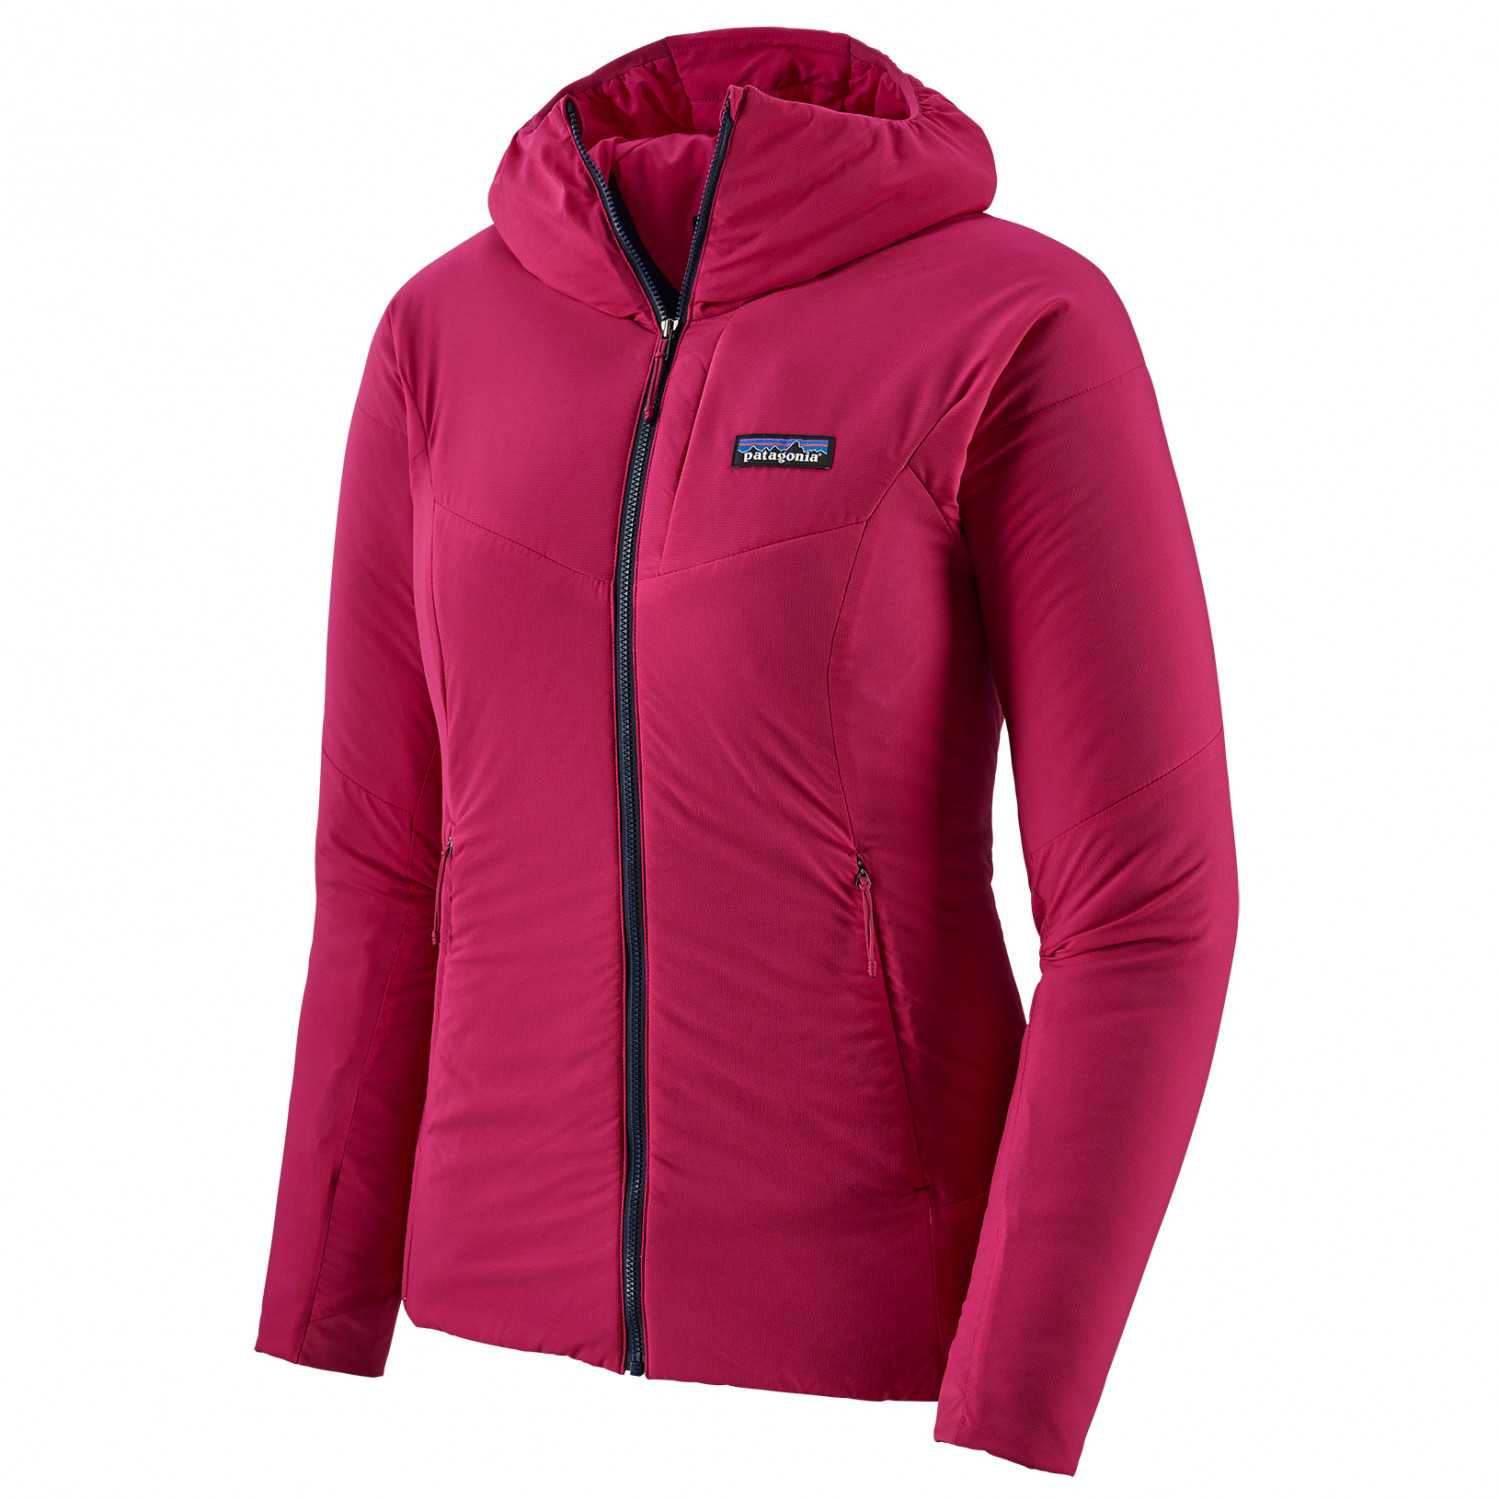 Patagonia Nano Air Hoody Veste synthétique Femme